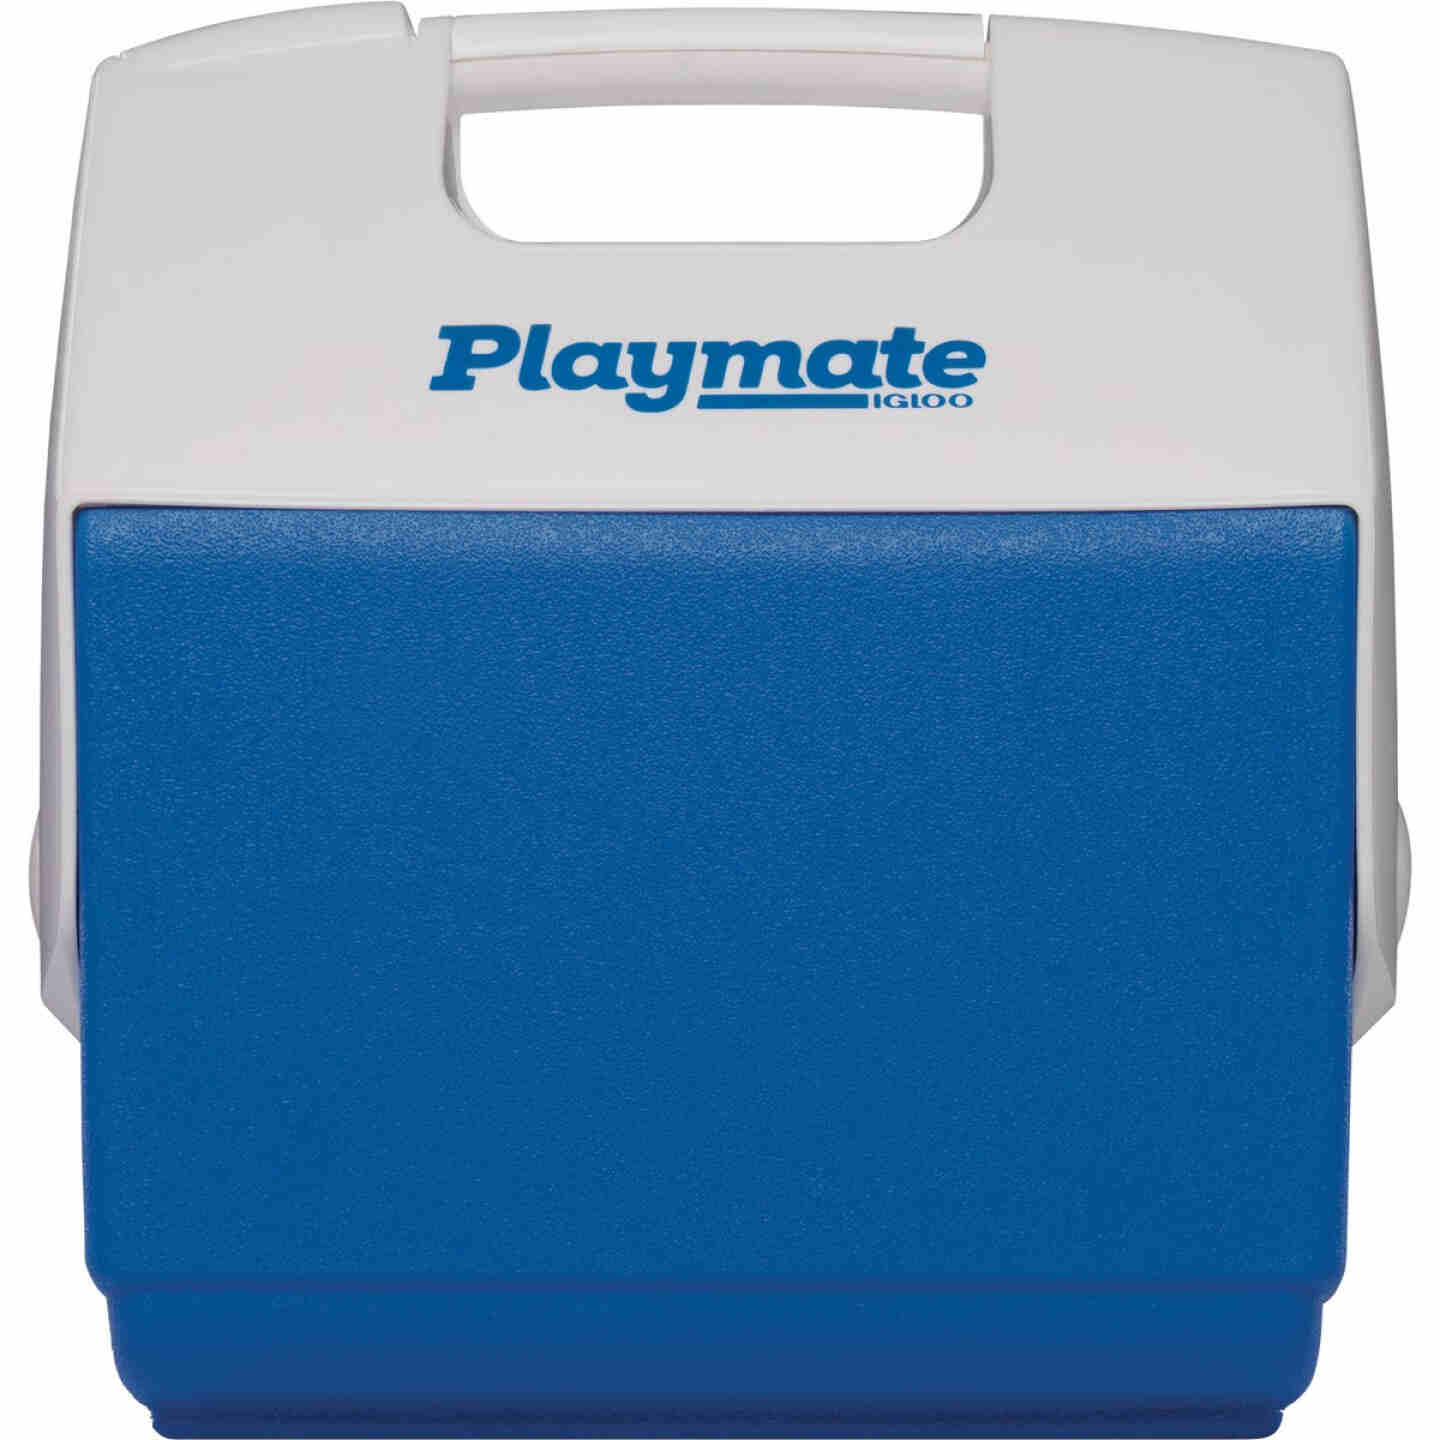 Igloo Playmate Elite 16 Qt. Cooler, Sneaky Blue Image 2